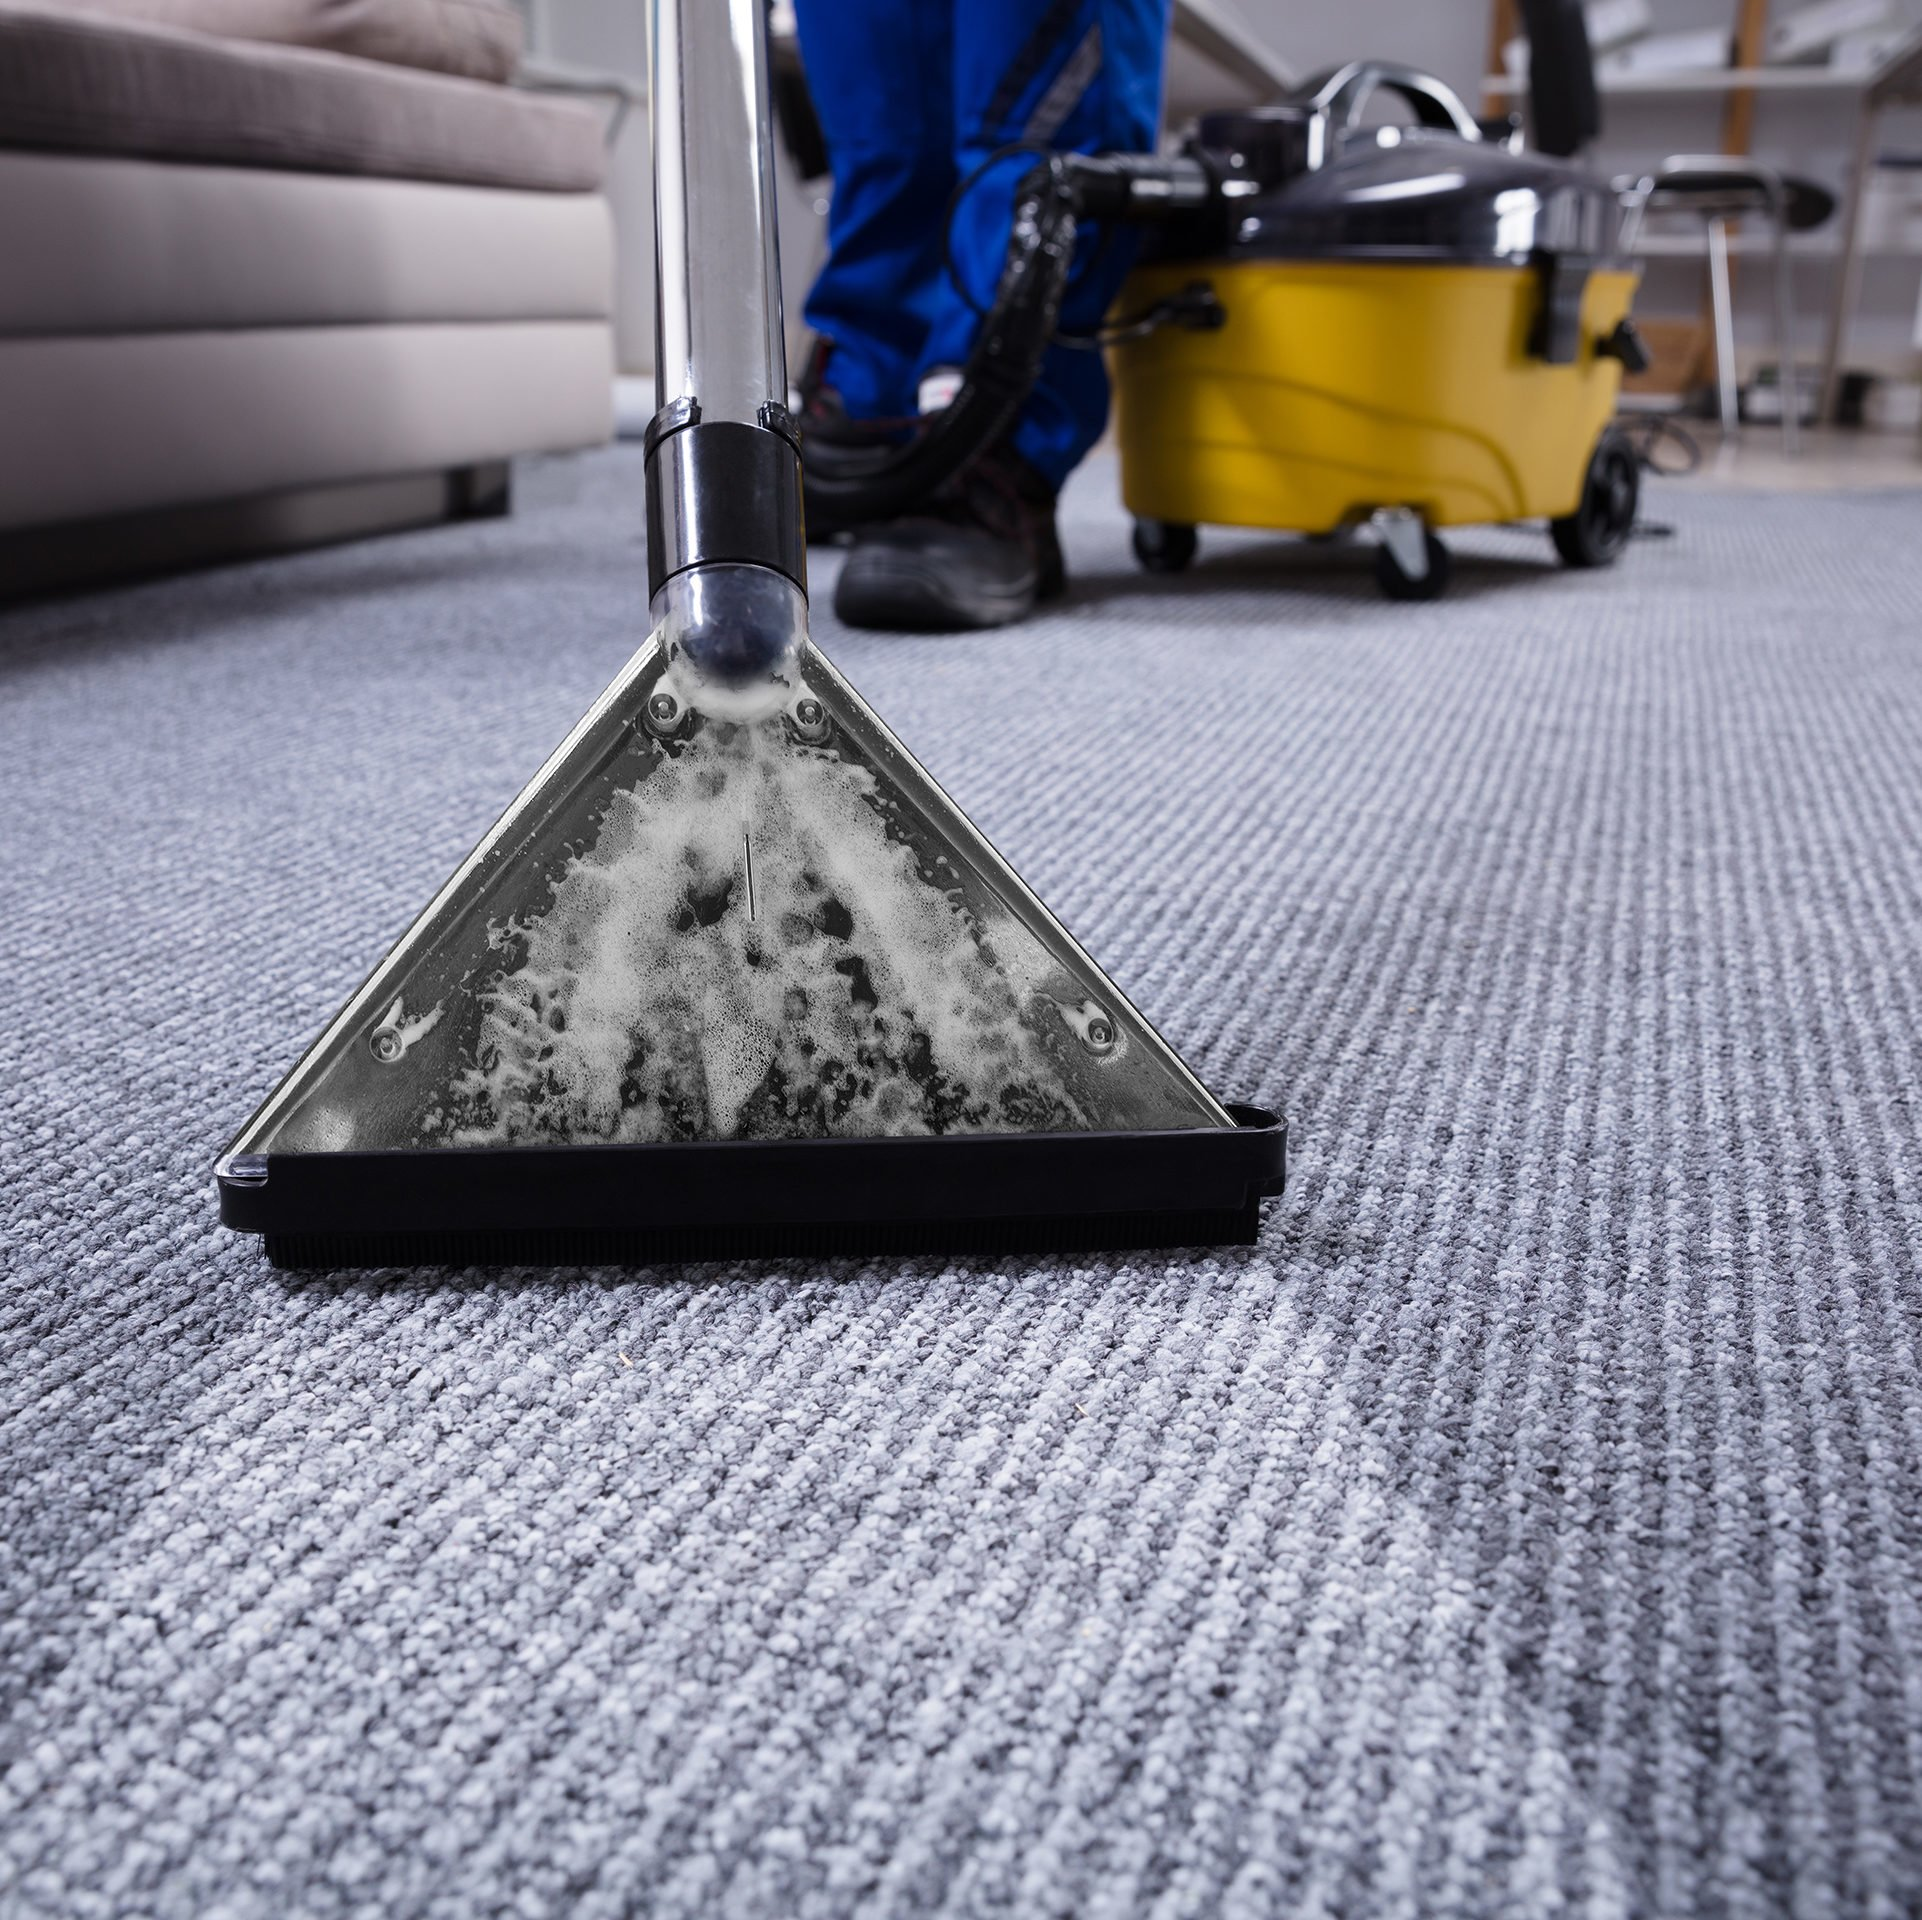 Steam Cleaning, Rug Cleaning, Professional Carpet Cleaning, Carpet and Upholstery Cleaning, Carpet Dry Express, Devizes, Wiltshire